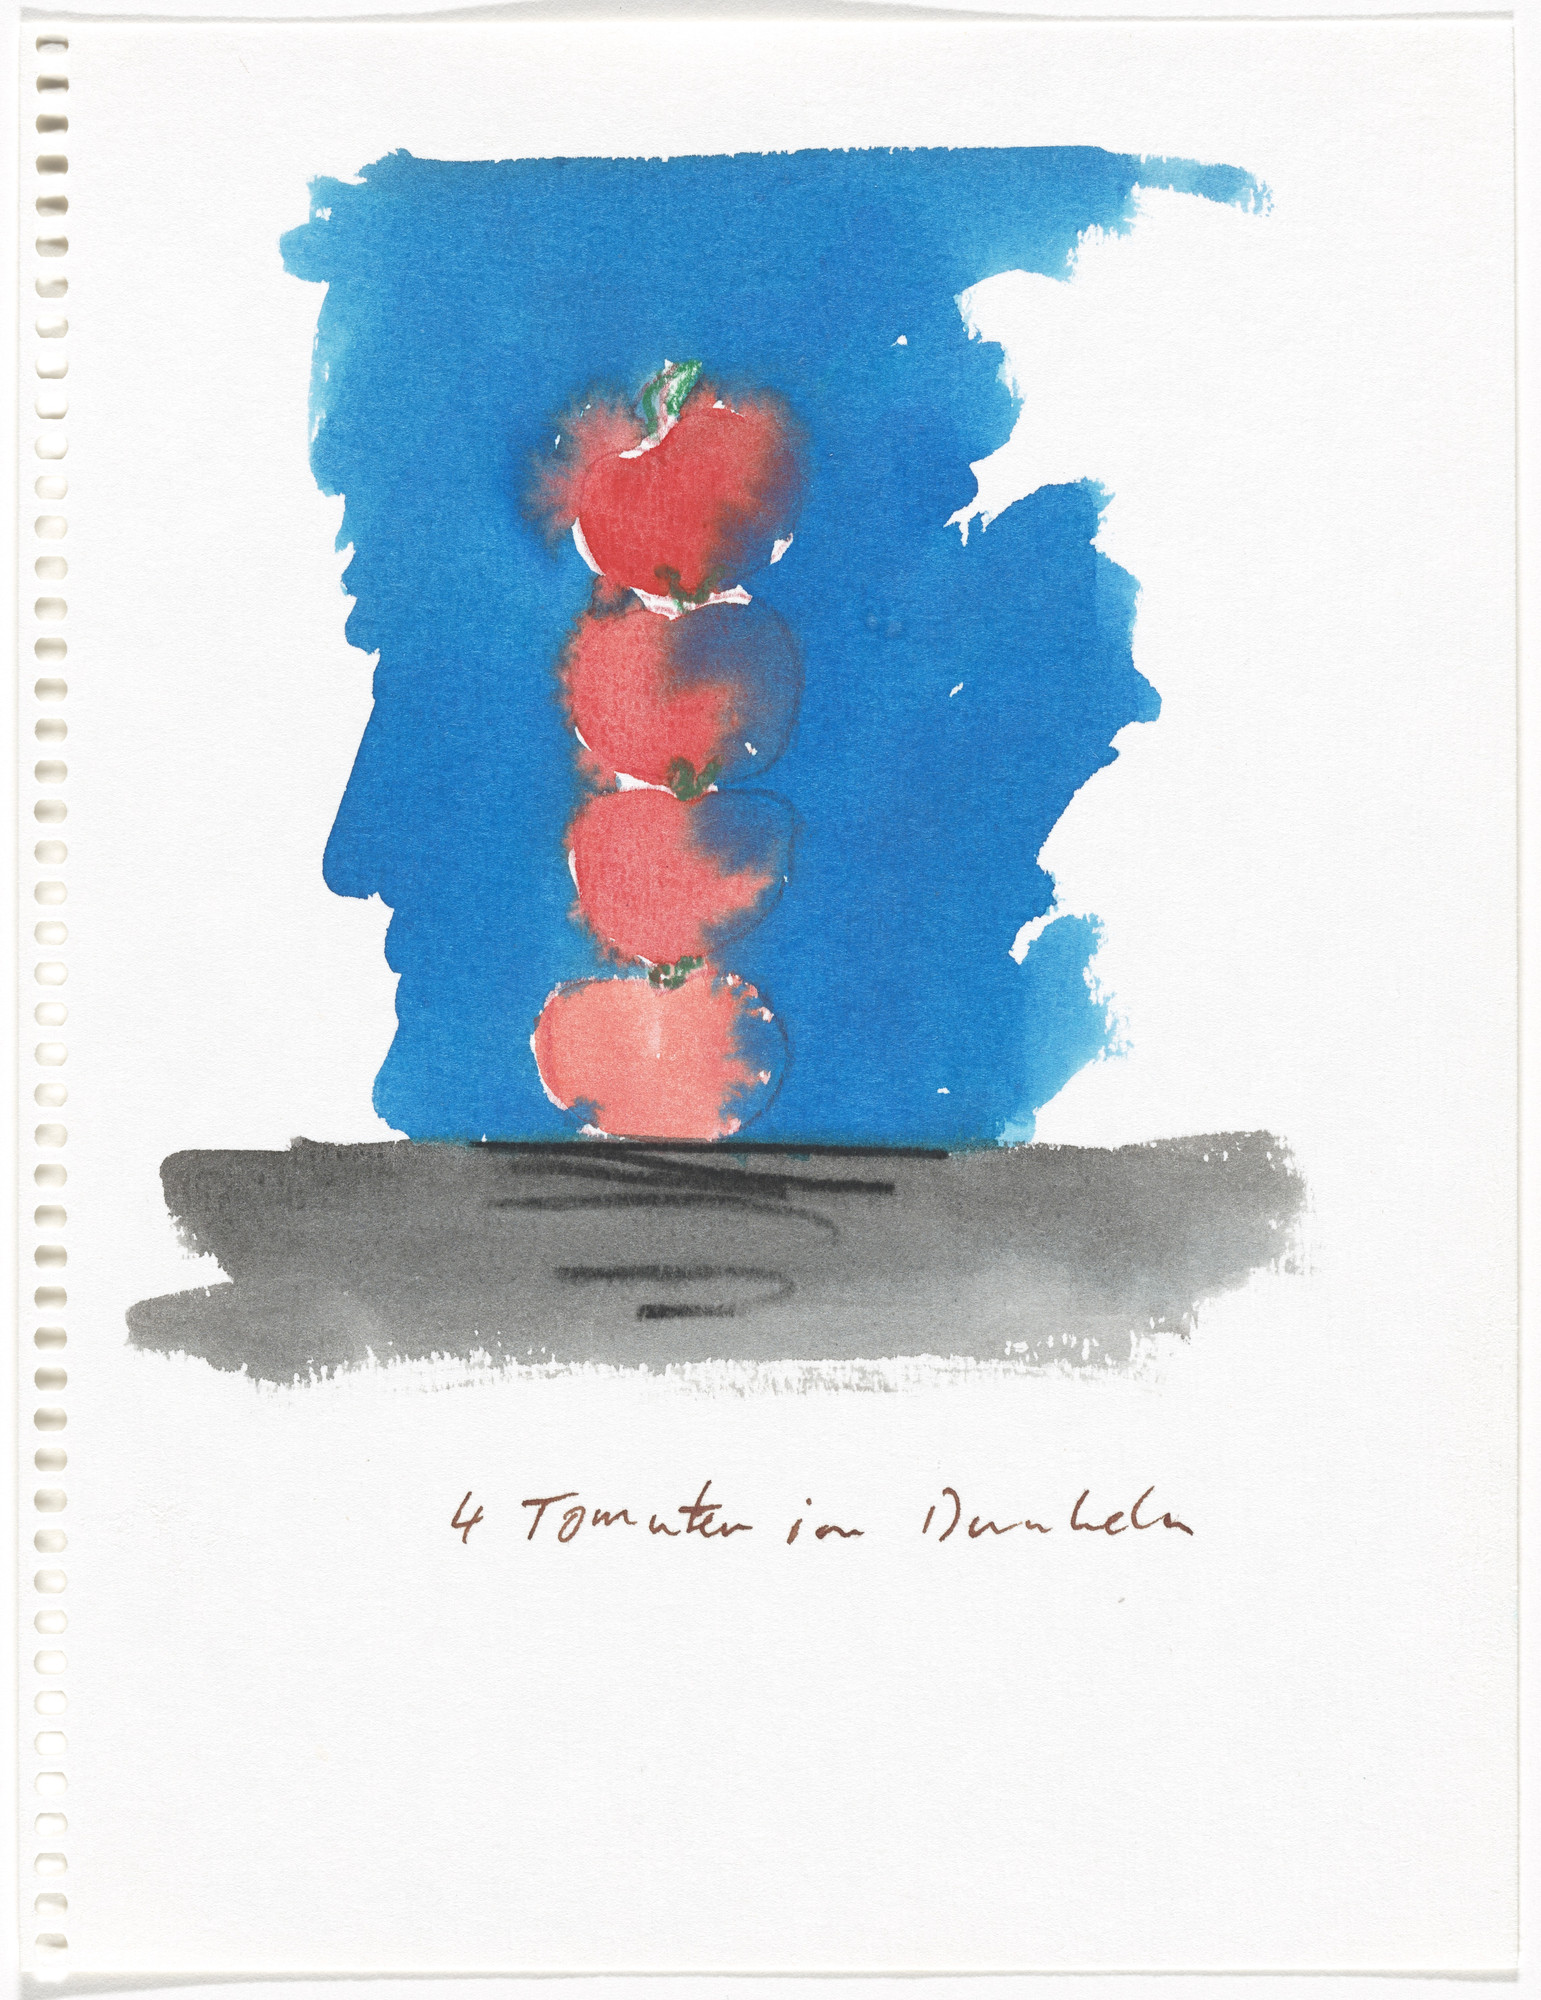 Thomas Schütte. 4 Tomaten im Dunkeln (4 Tomatoes in the Dark) from Aquarellen (Watercolors). 1987